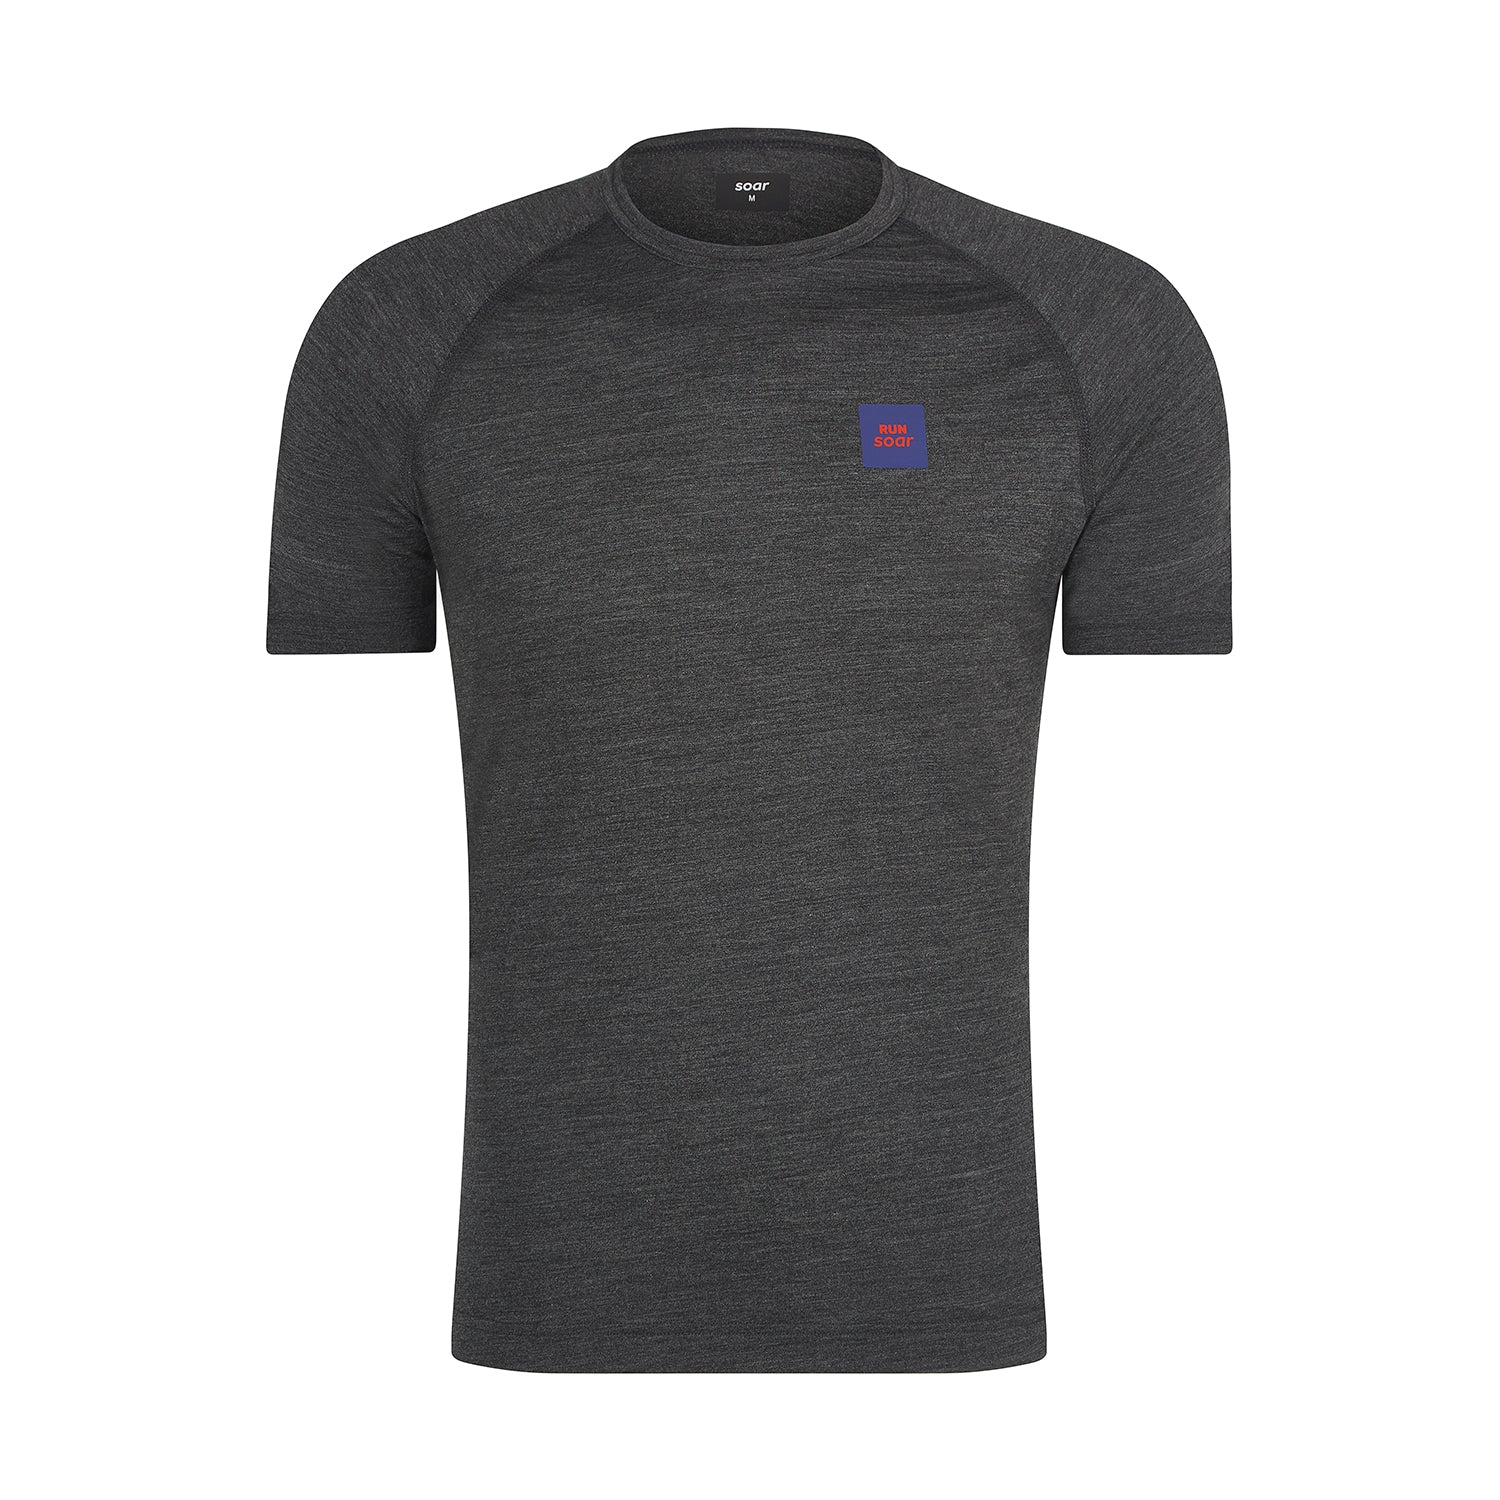 Soar | Short Sleeve Merino & Silk T-Shirt Base